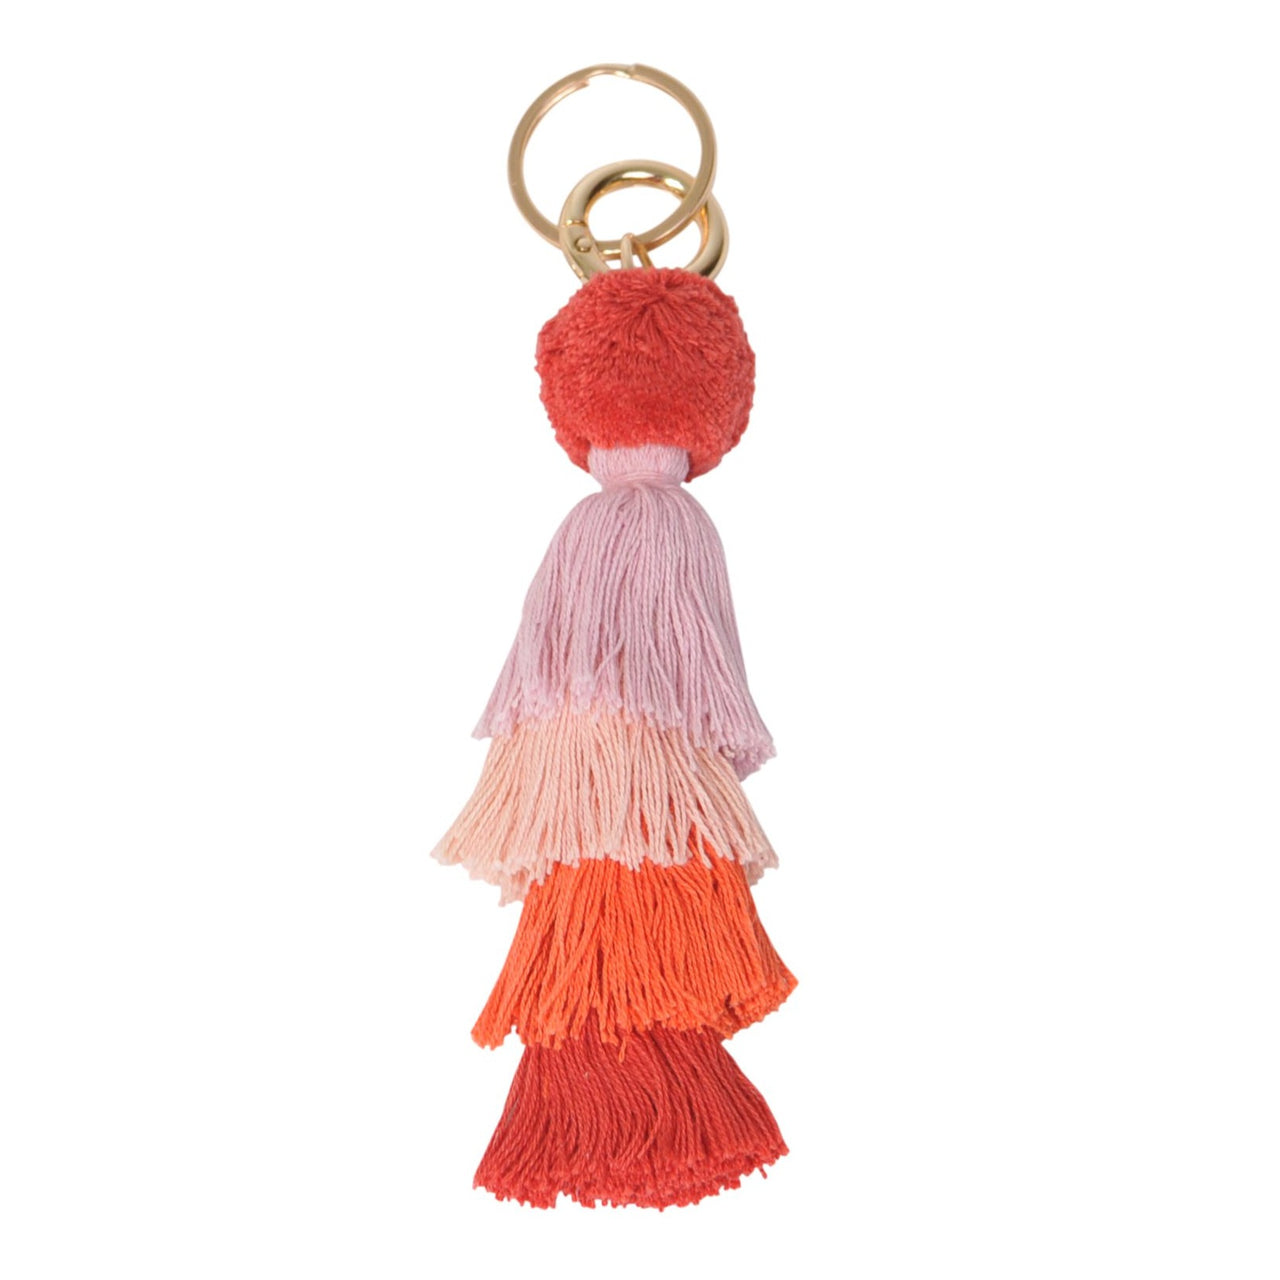 Wildfire Key Ring